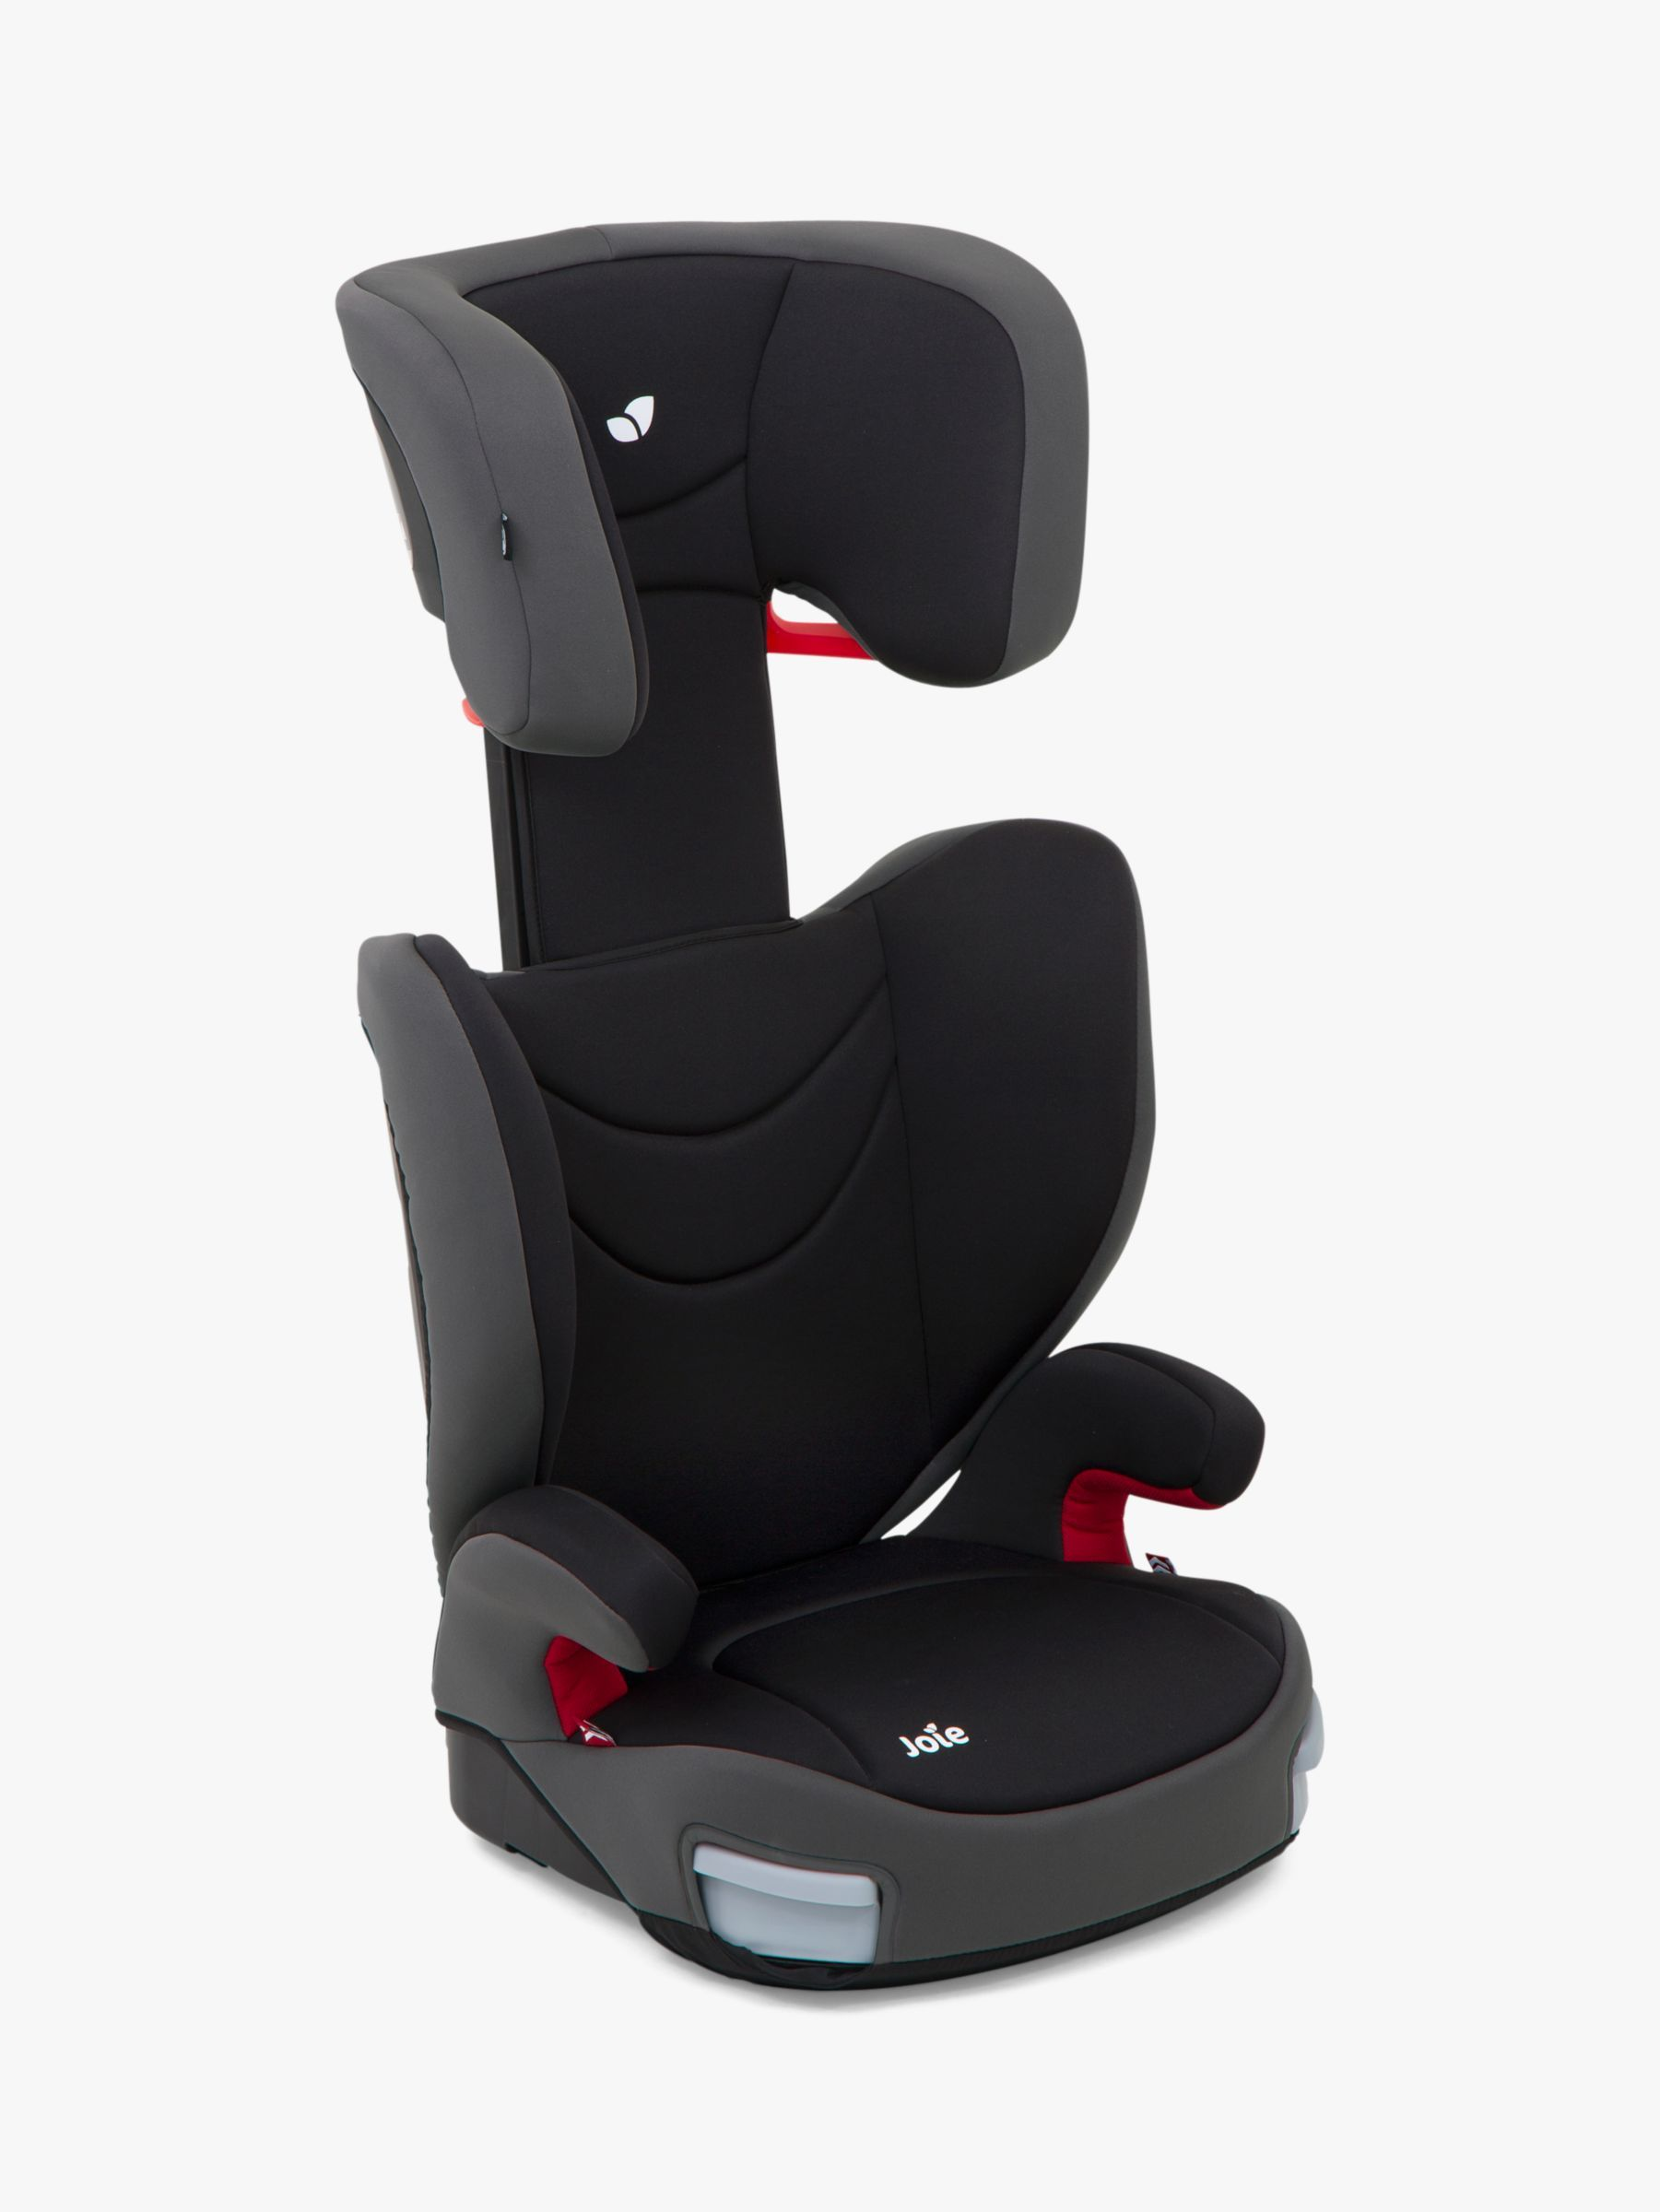 Joie Trillo Group 2/3 High Back Booster Car Seat, Ember